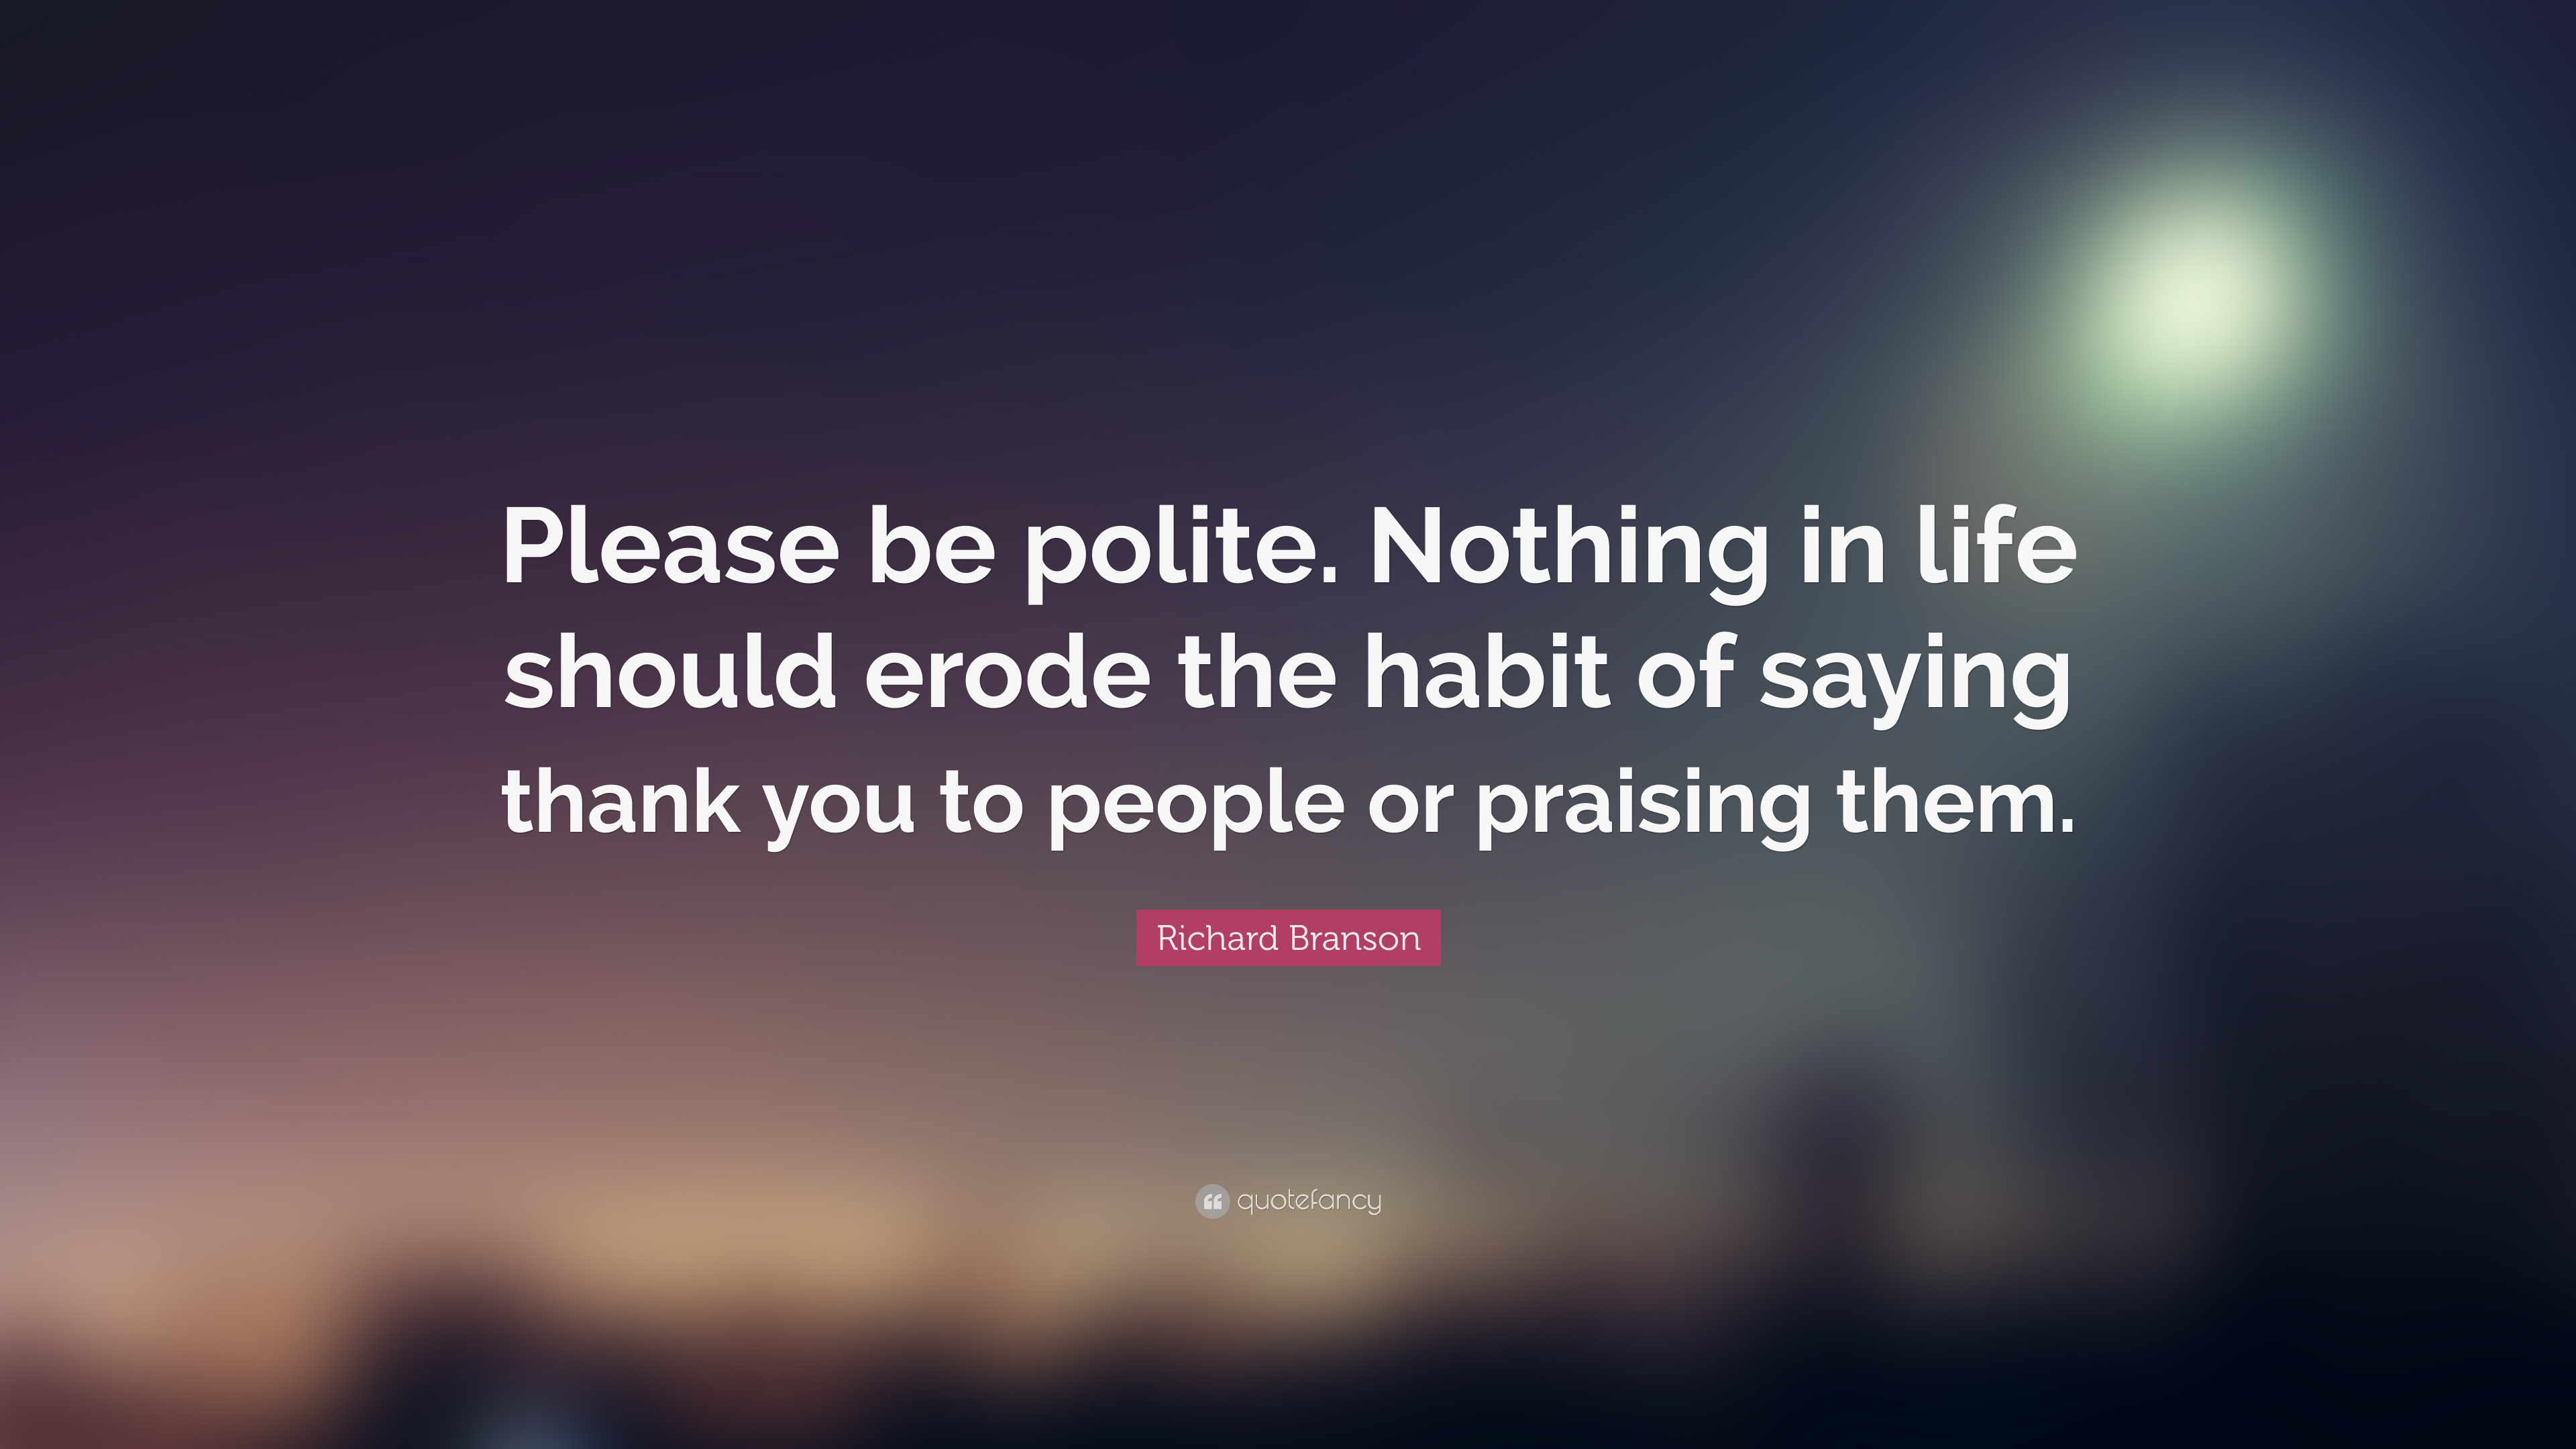 politeness in life Wonders of politeness in marriage most of us are polite to strangers, neighbors, passers-by but are fond of hurting our spouses with our words to.